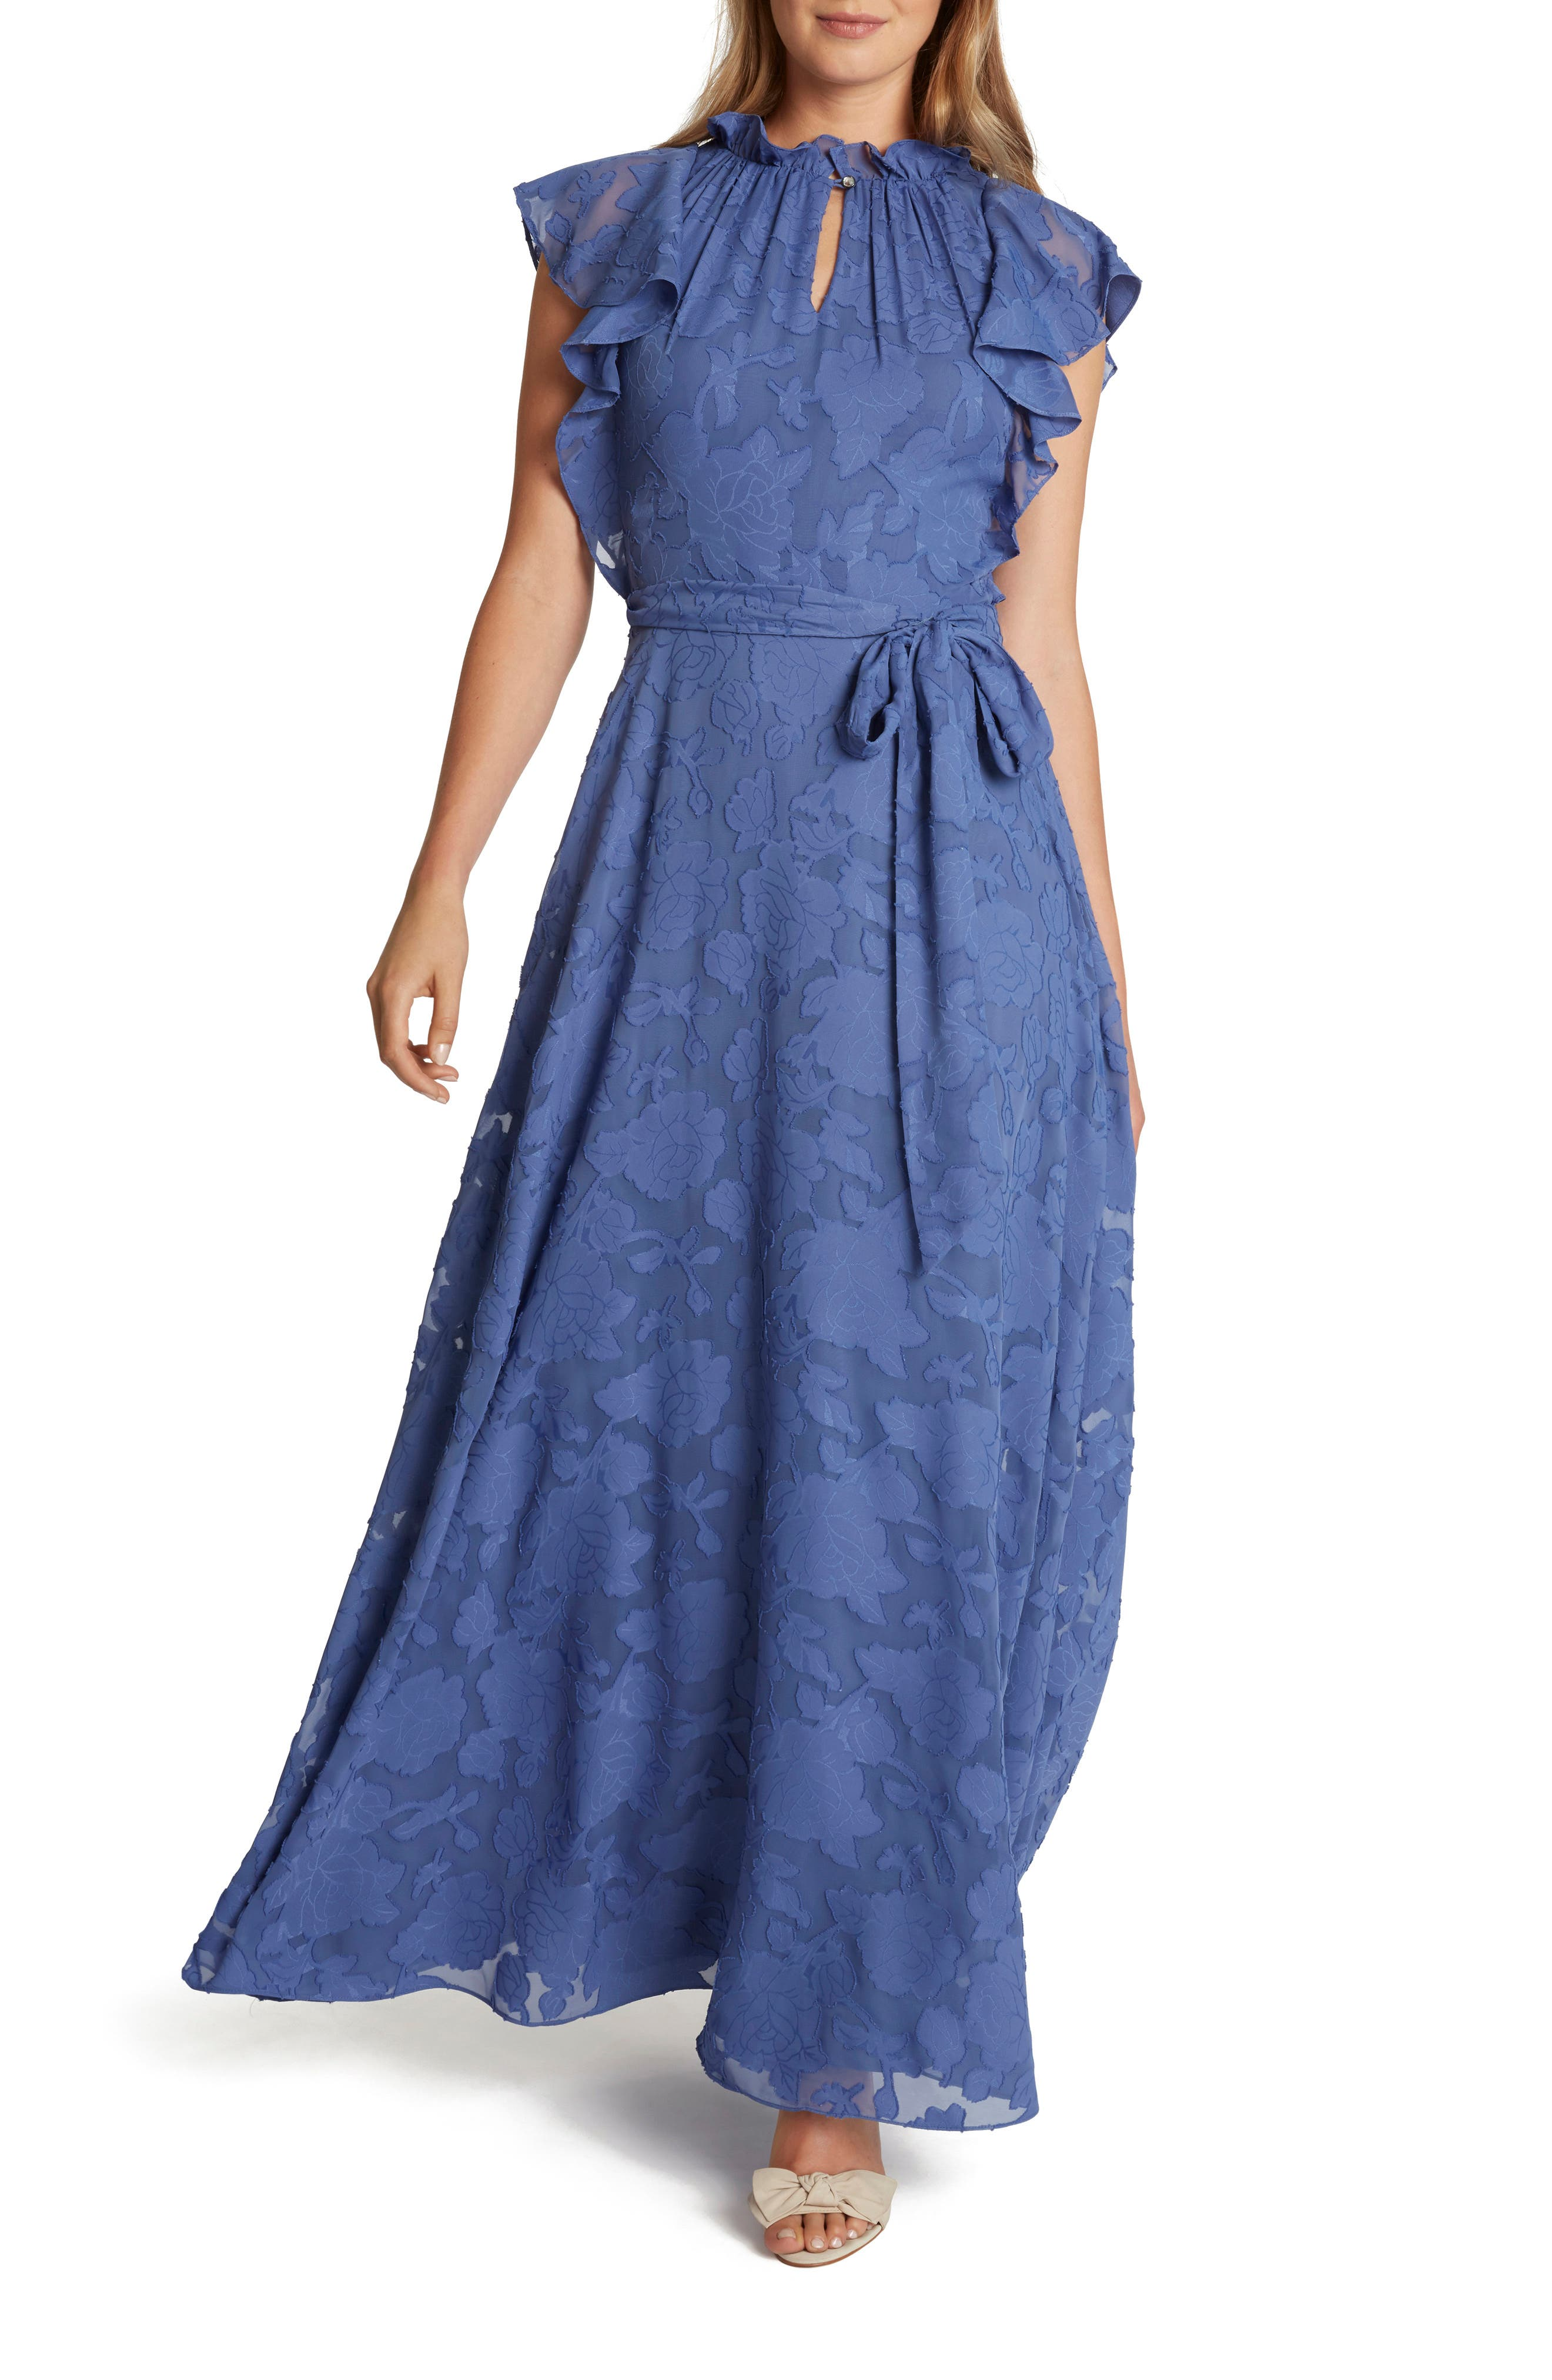 Vintage Prom Dresses, Homecoming Dress Womens Tahari Ruffle Neck Floral Jacquard Gown $178.00 AT vintagedancer.com